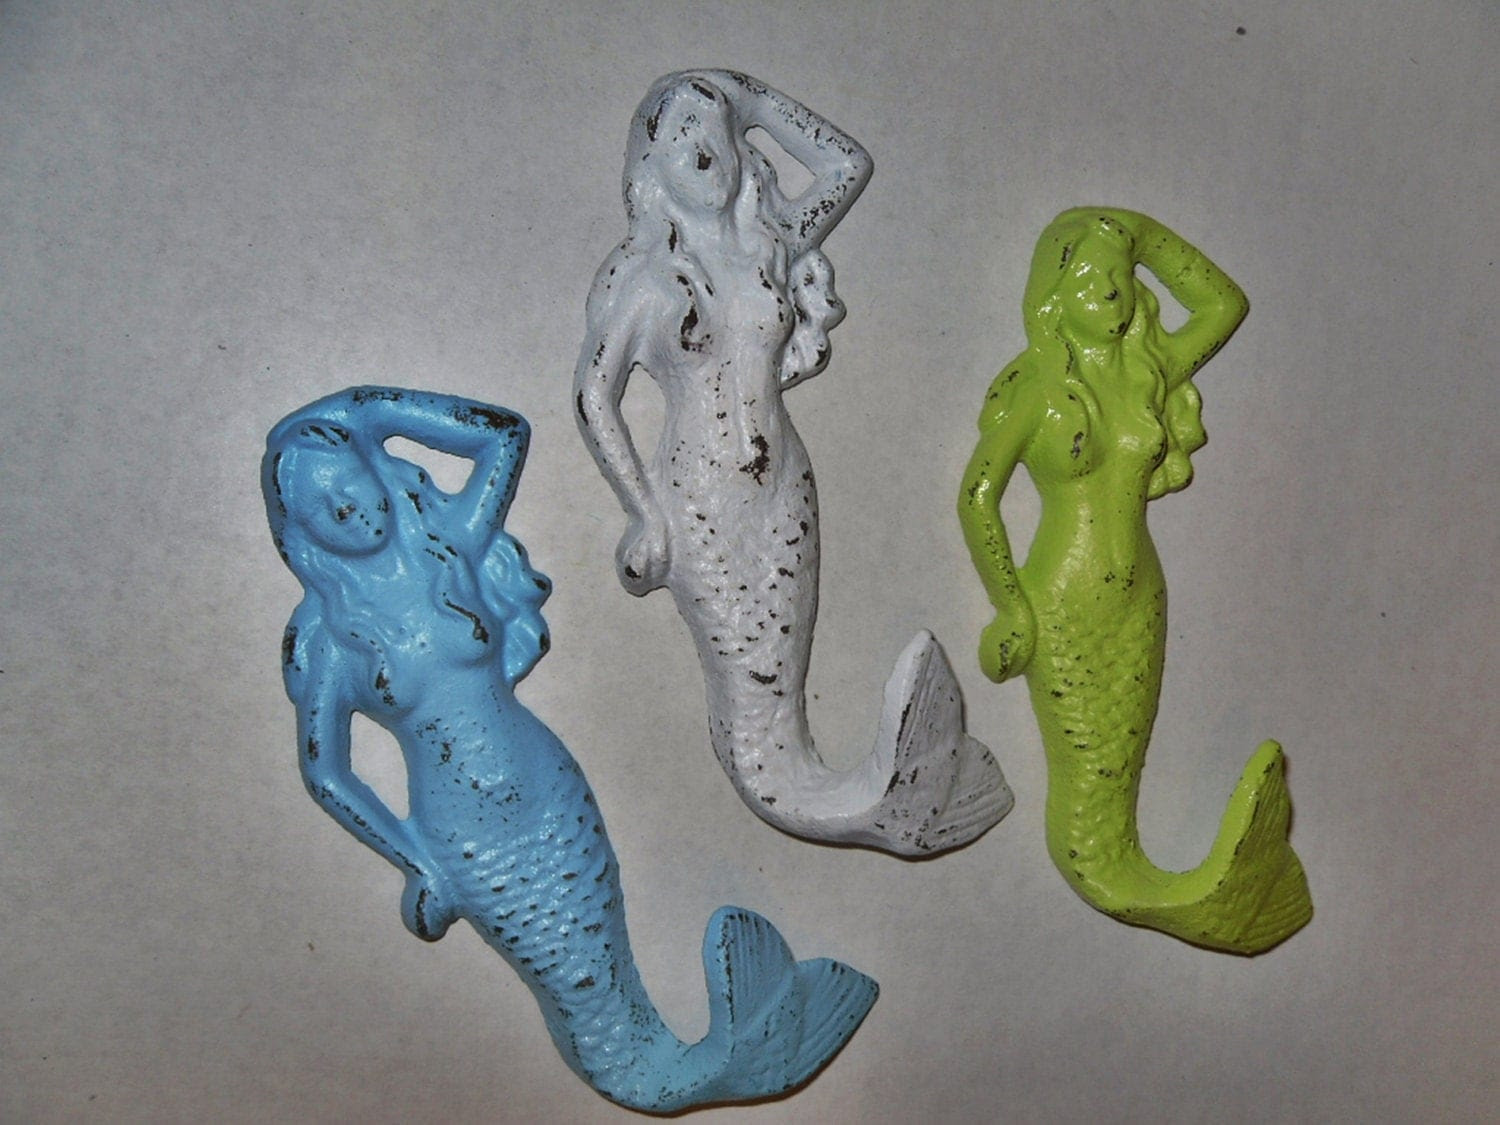 Mermaid Hook / Wall Hook / Towel Hook / Bathroom by Theshabbyshak